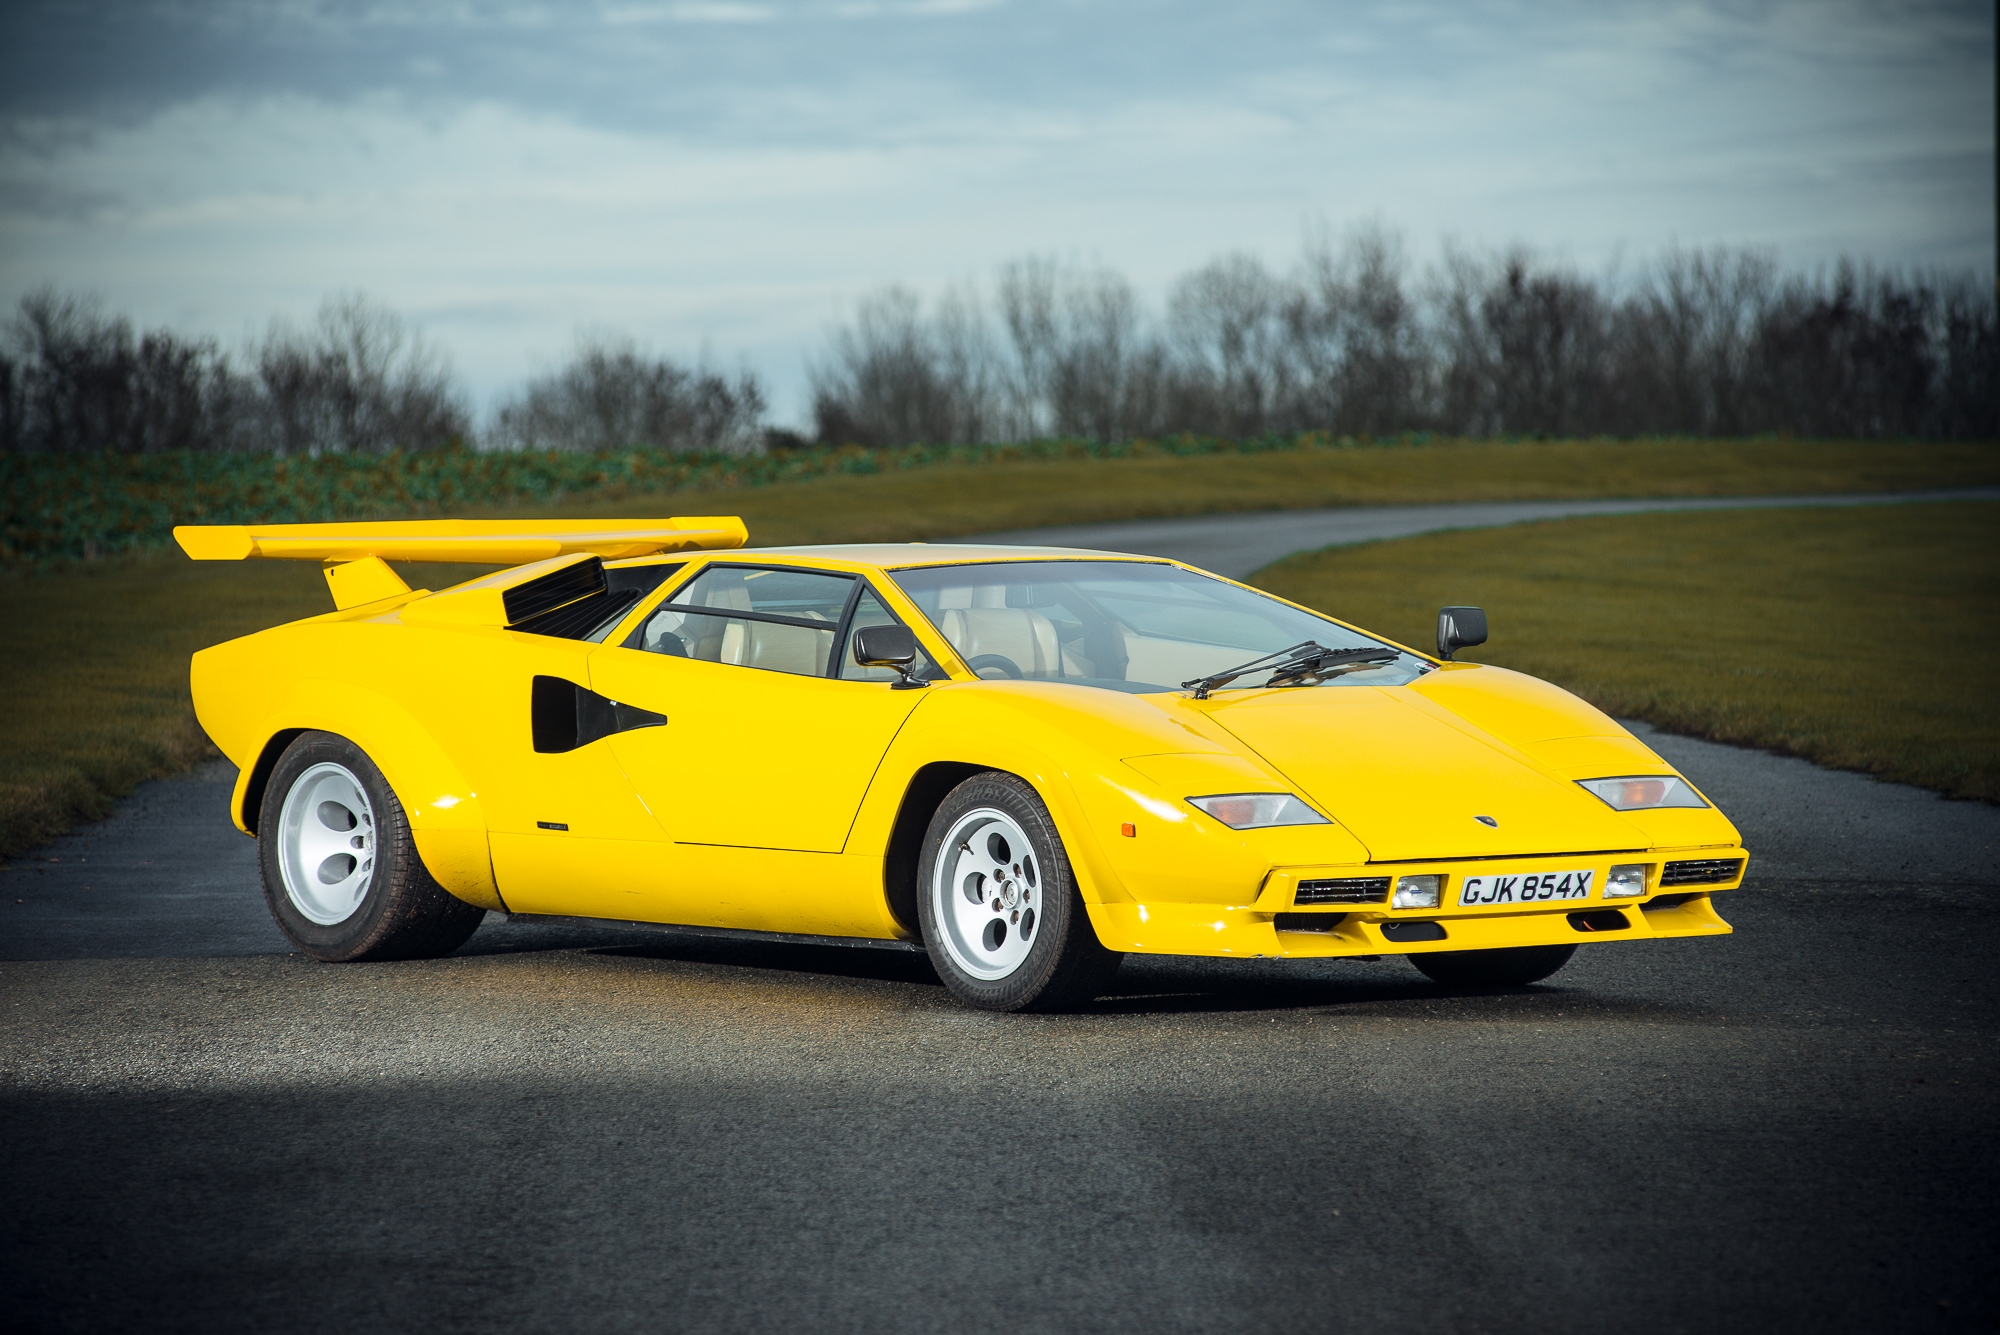 An Incredibly Rare 1981 Lamborghini Countach Could Be Yours ...